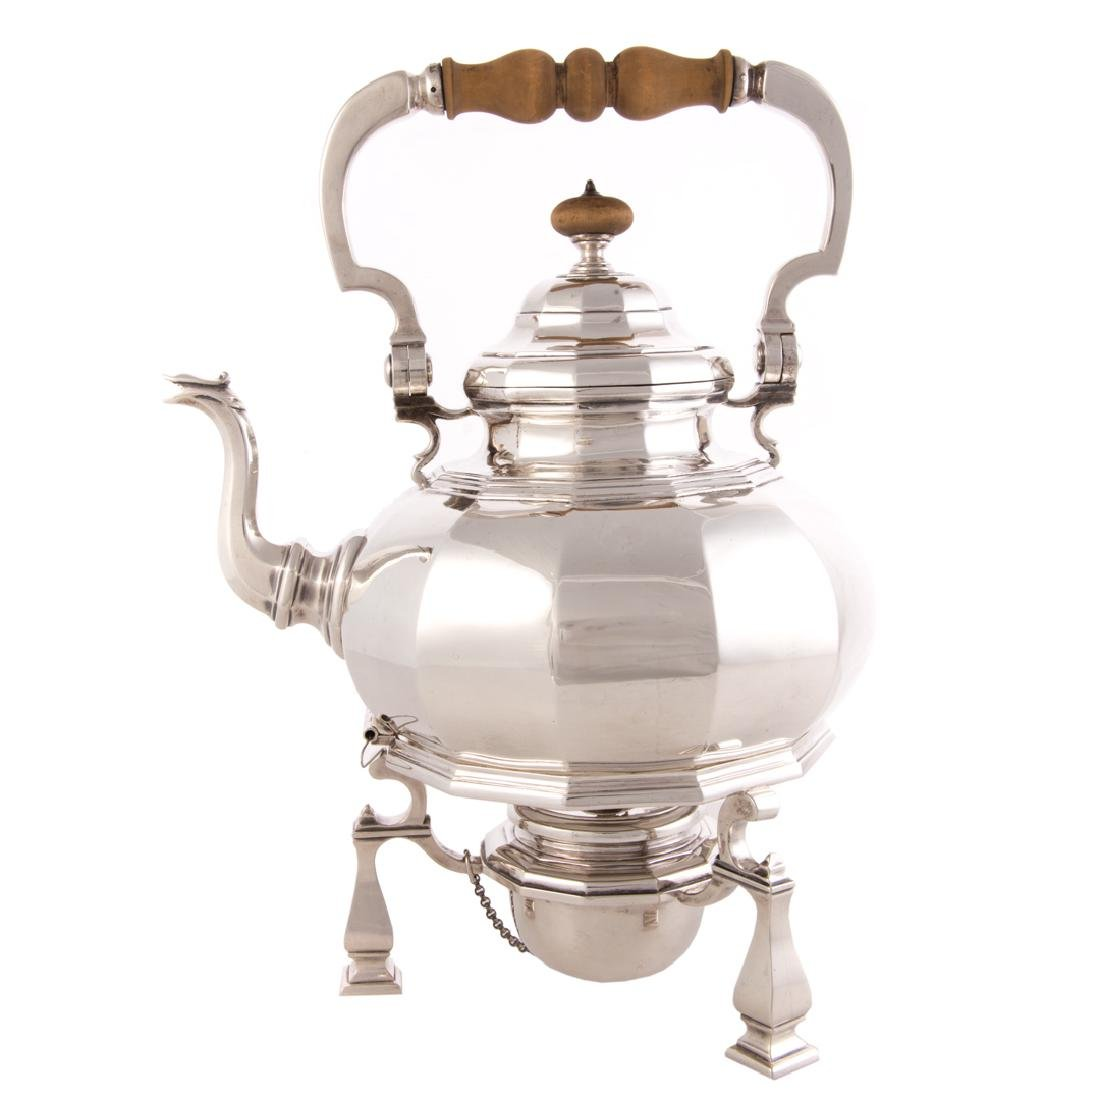 Impressive George V silver teapot on stand